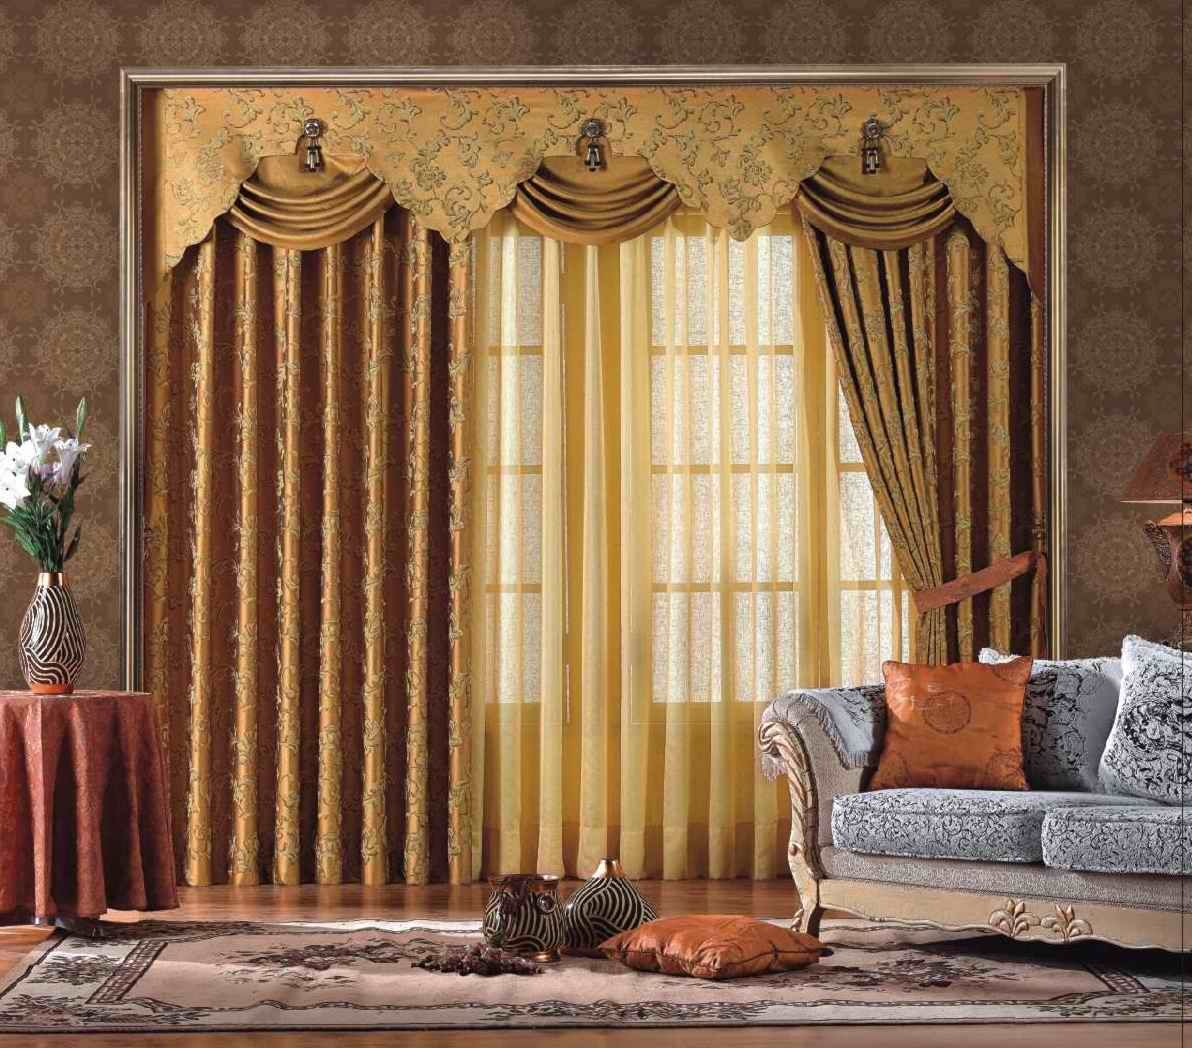 Curtains Design Ideas curtain accessories Enhance Your Room With Various Curtain Styles Drapery Room Ideas